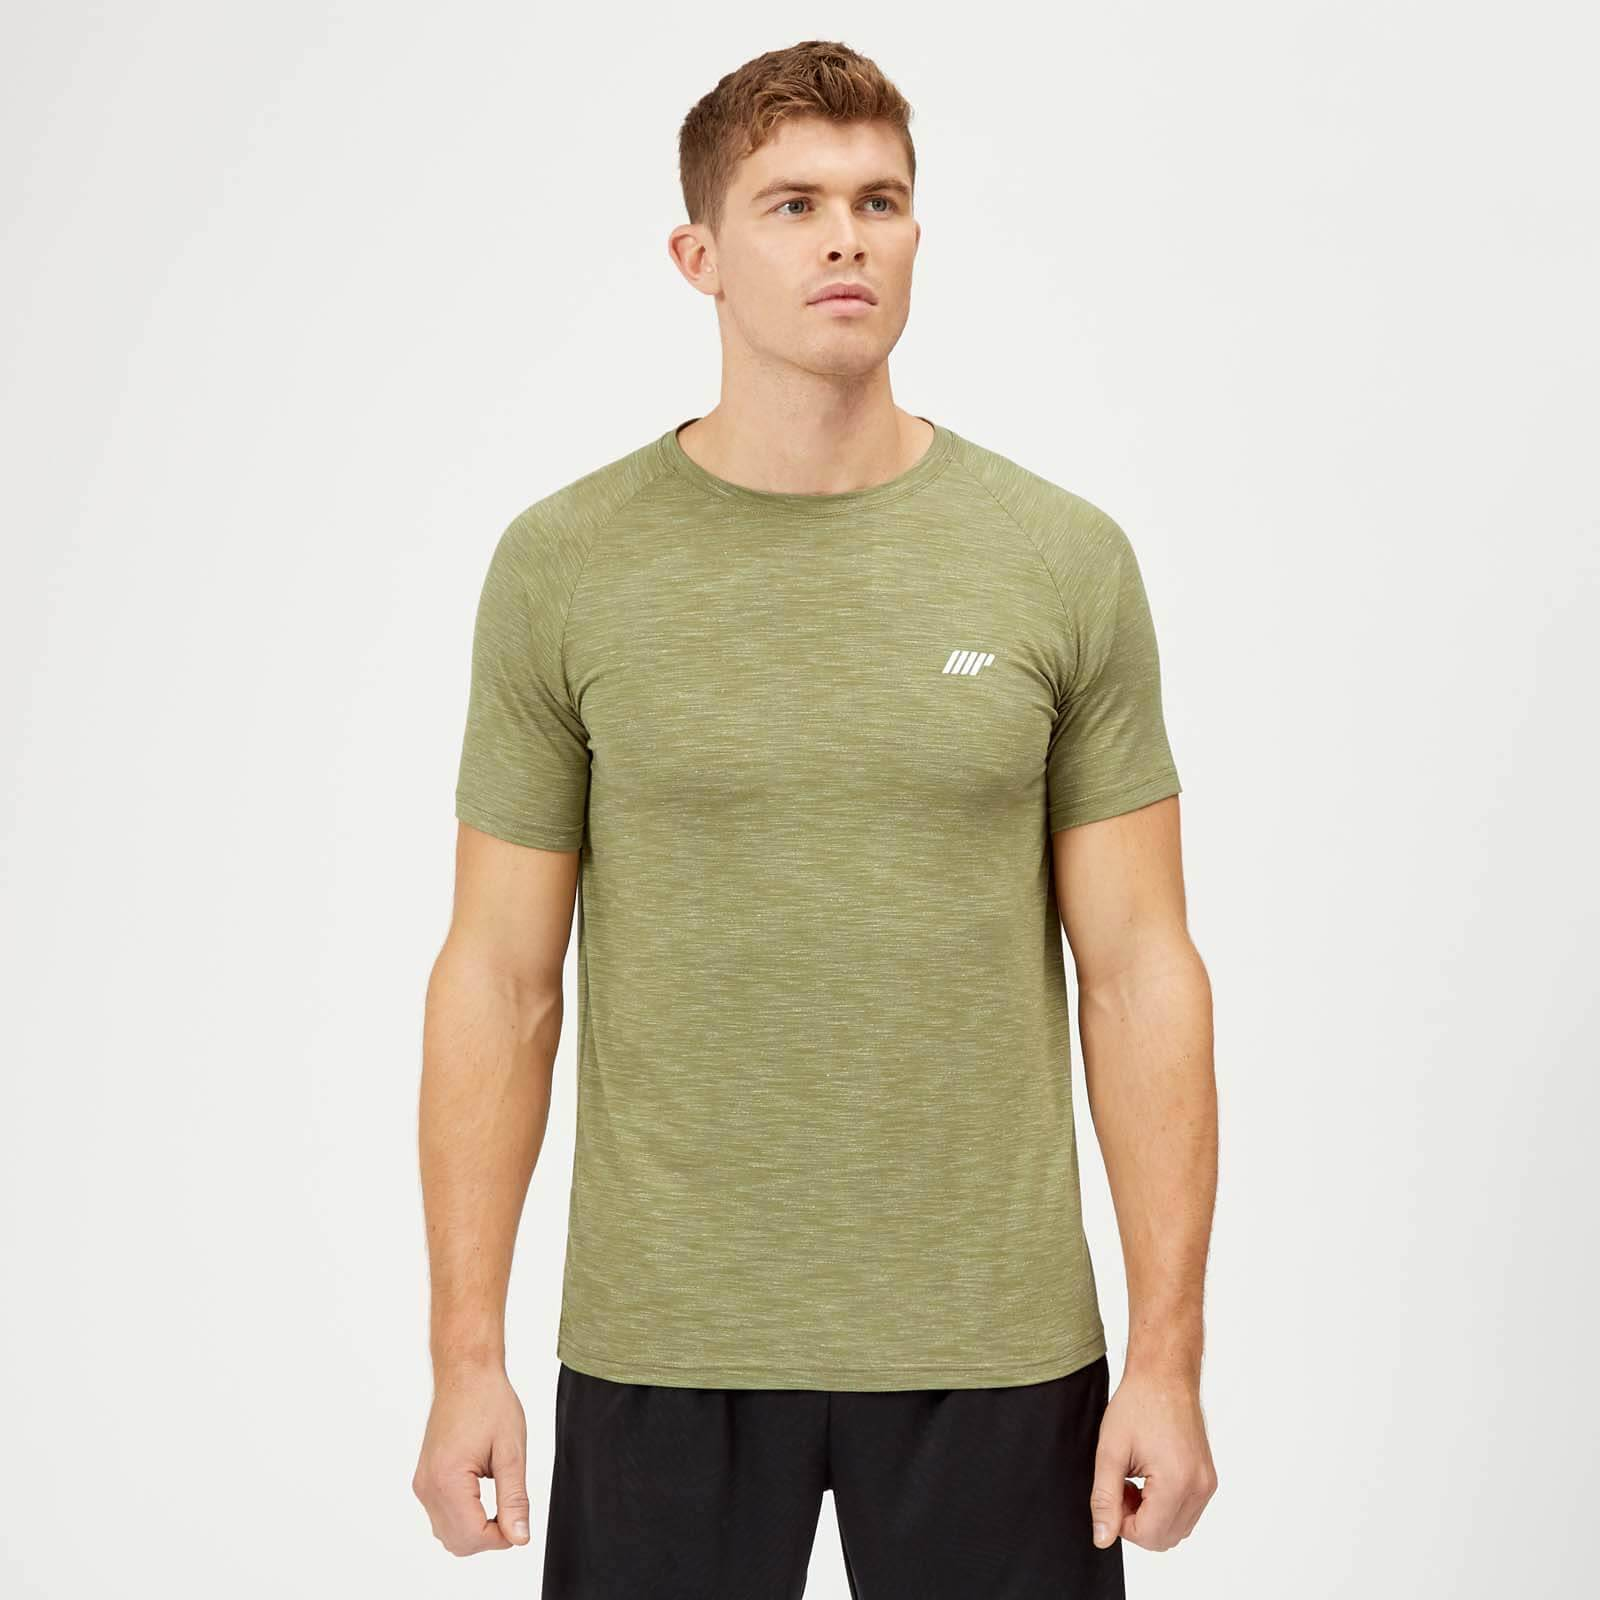 Myprotein Camiseta Performance Edición Limitada - XL